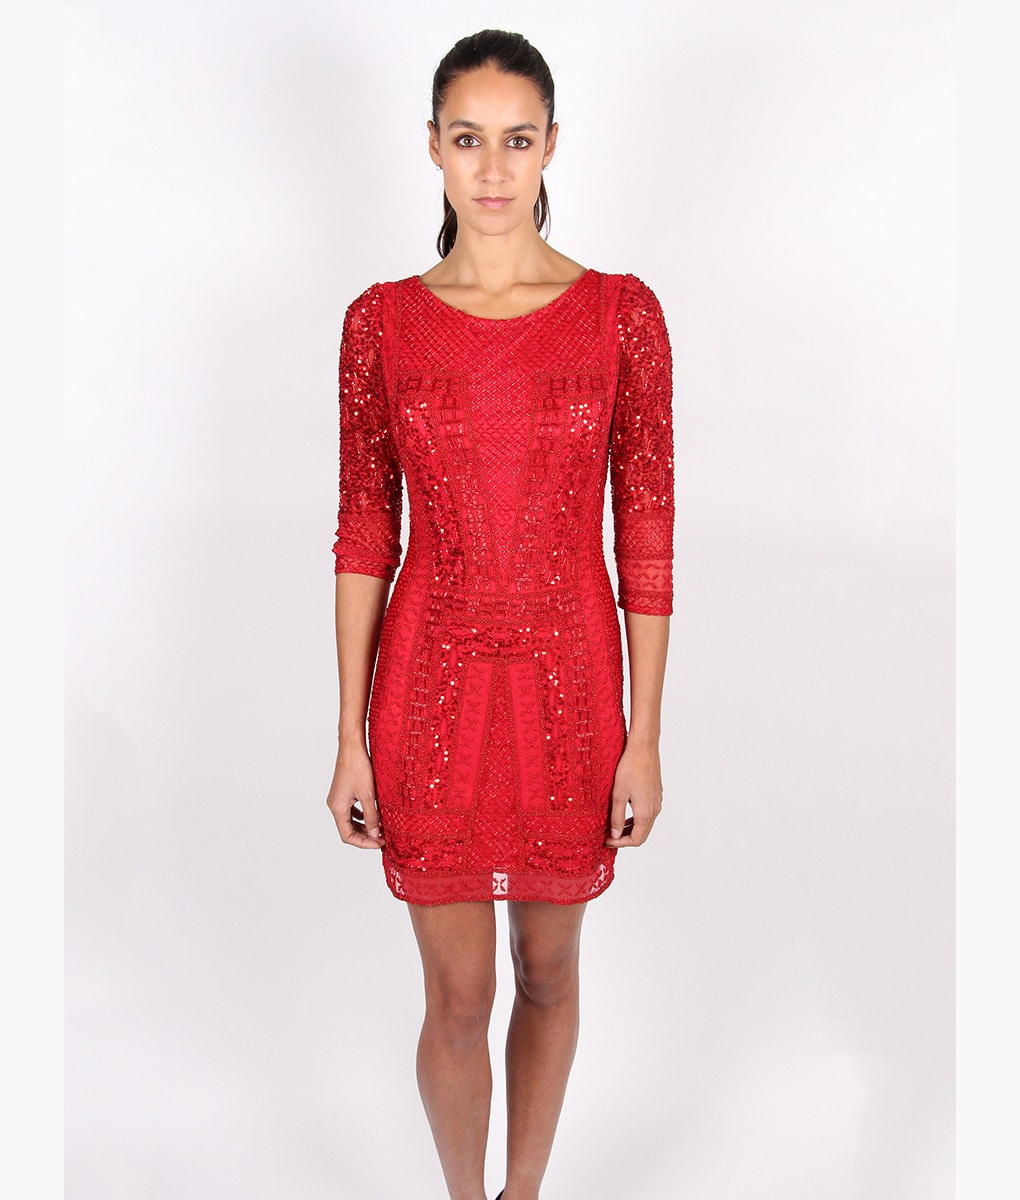 Alila-Red-Long-sleeve-Sequin-mini-dress-by-Scala